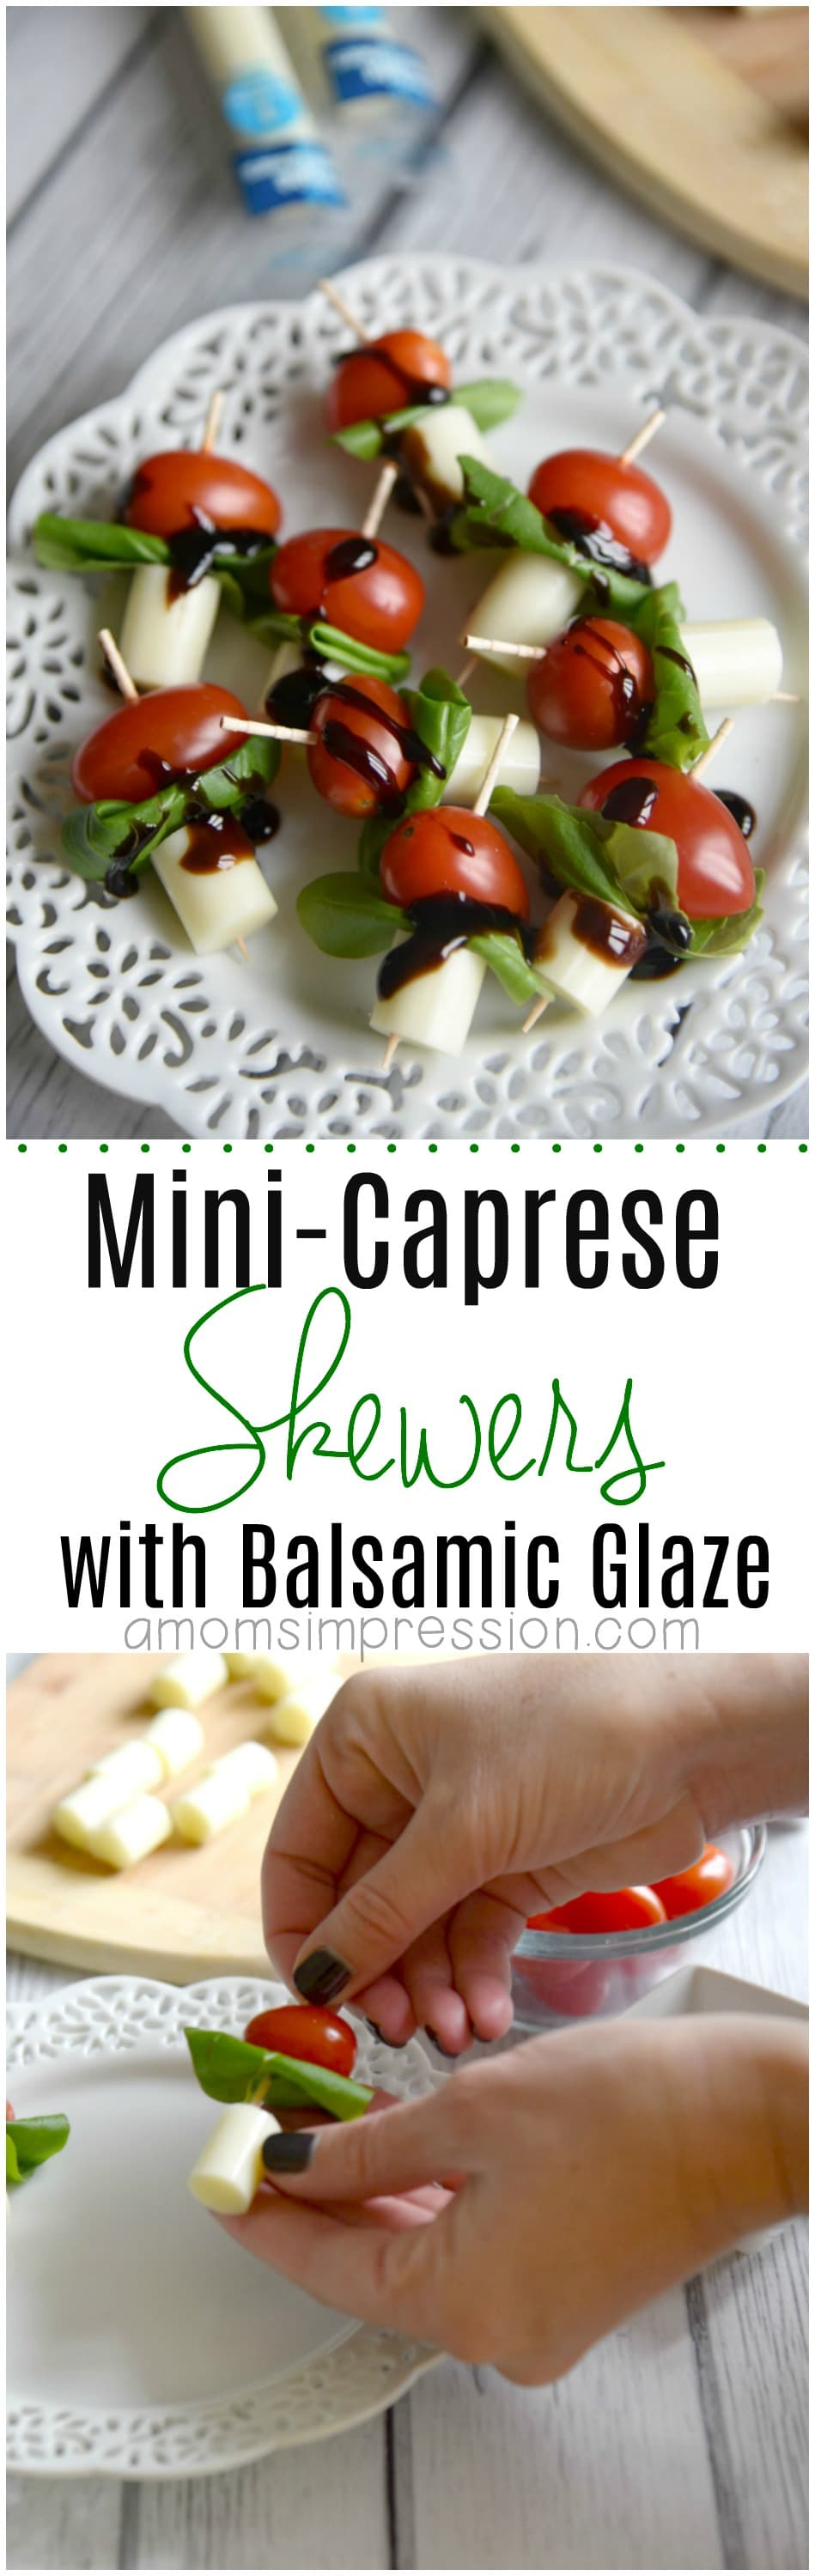 Simple Mini Caprese Skewers with Balsamic Glaze are perfect for a healthier appetizer option at any party or gathering. This recipe is easy and ready for your party in minutes. #Caprese